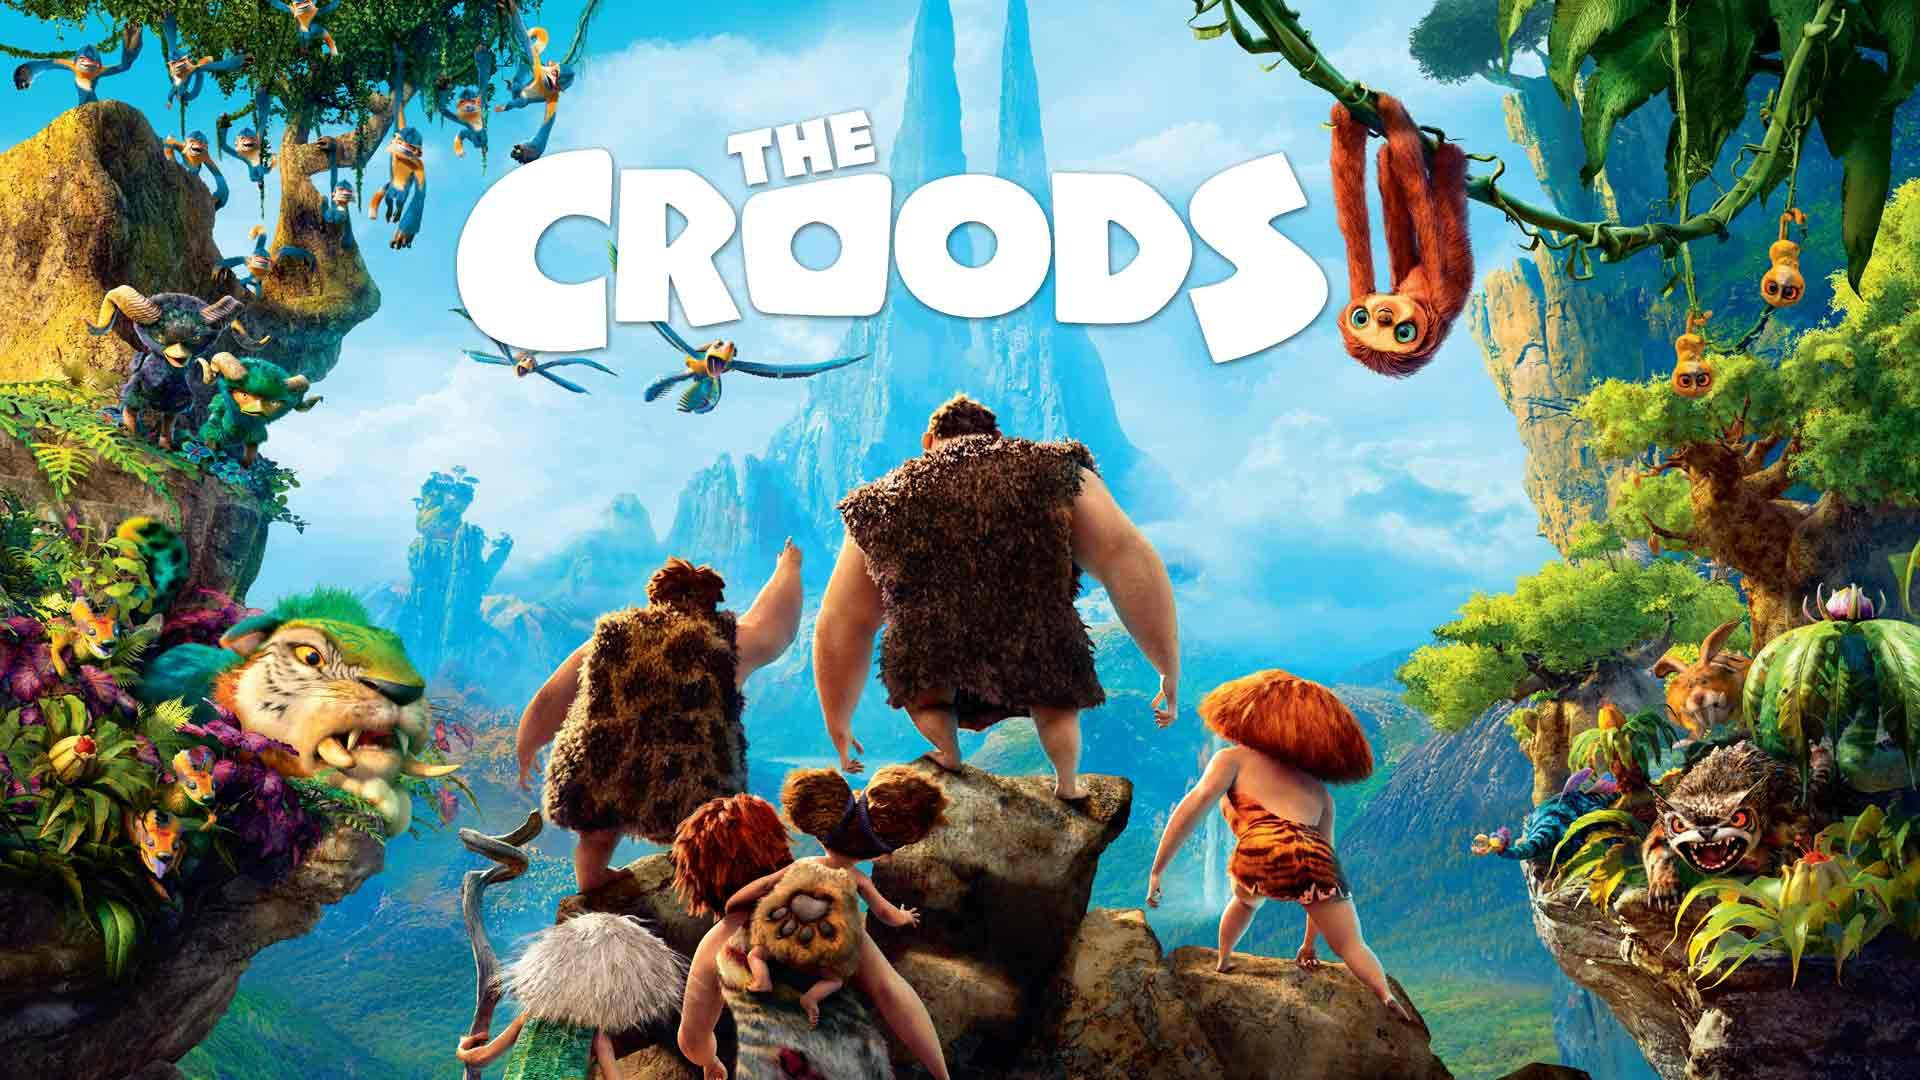 watch the croods full movie online in hd, streaming exclusively only